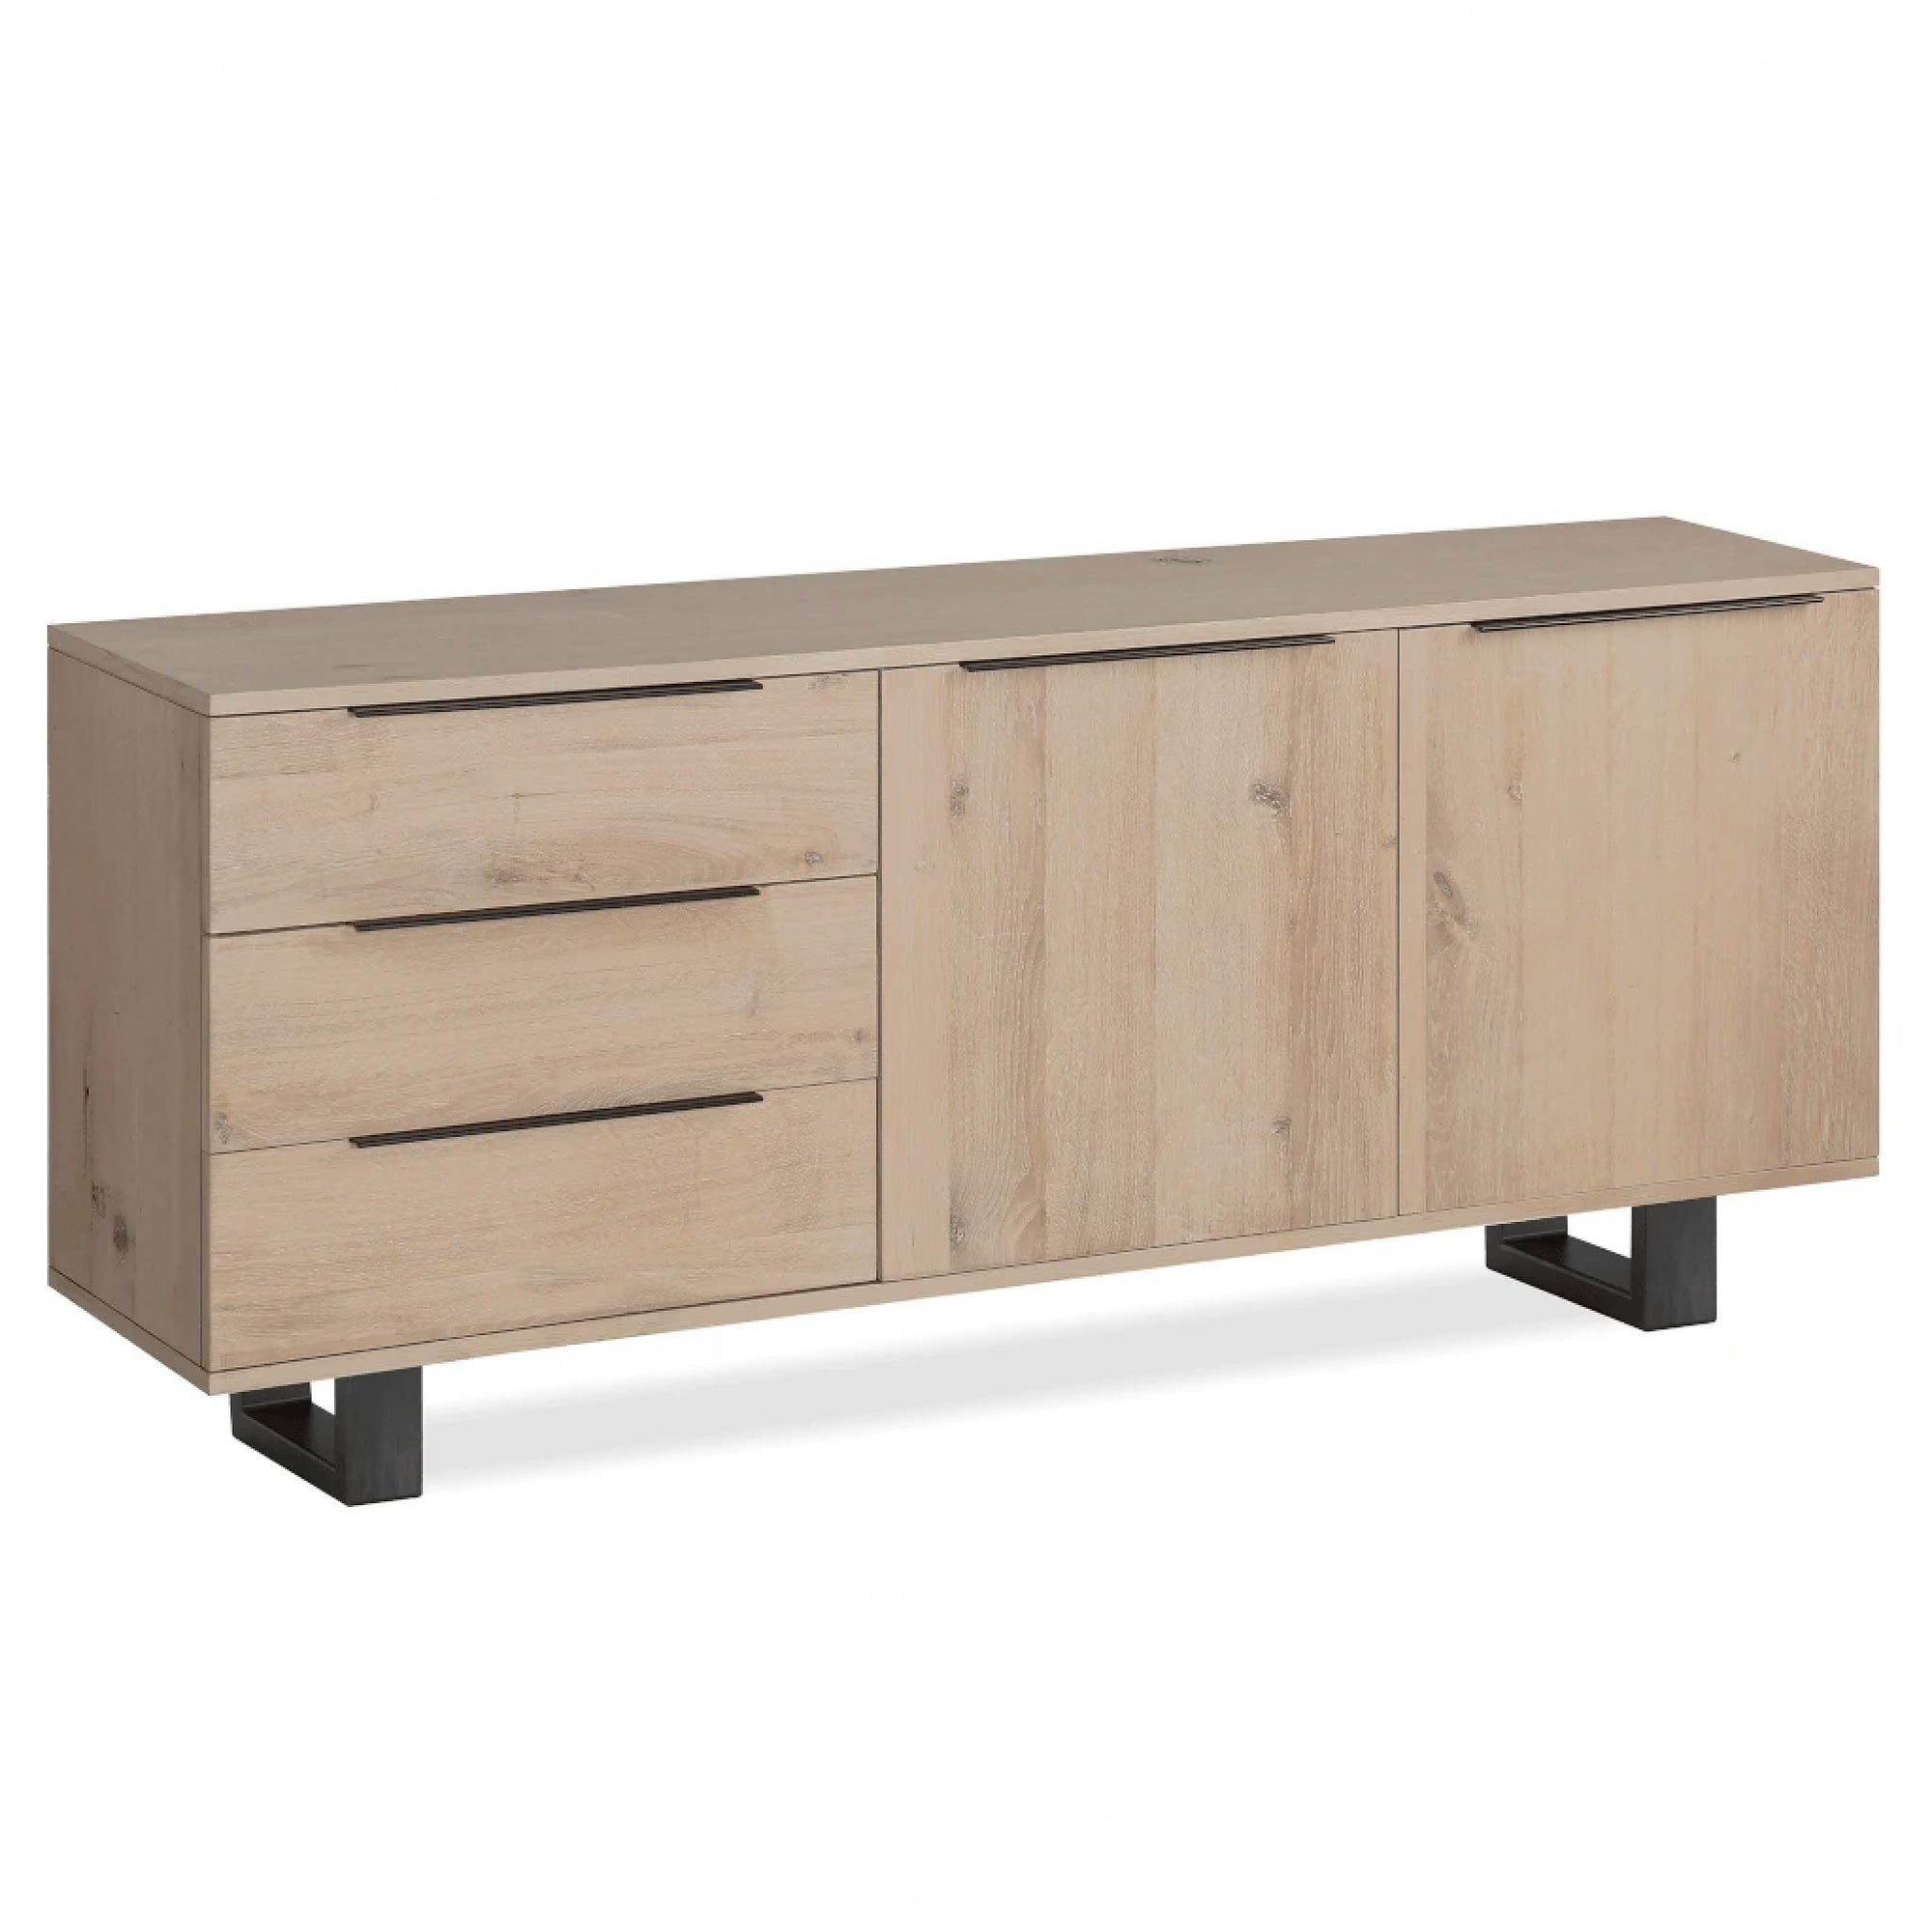 Oak Mill Large Sideboard - Metal Base - White Oil by Roseland Furniture